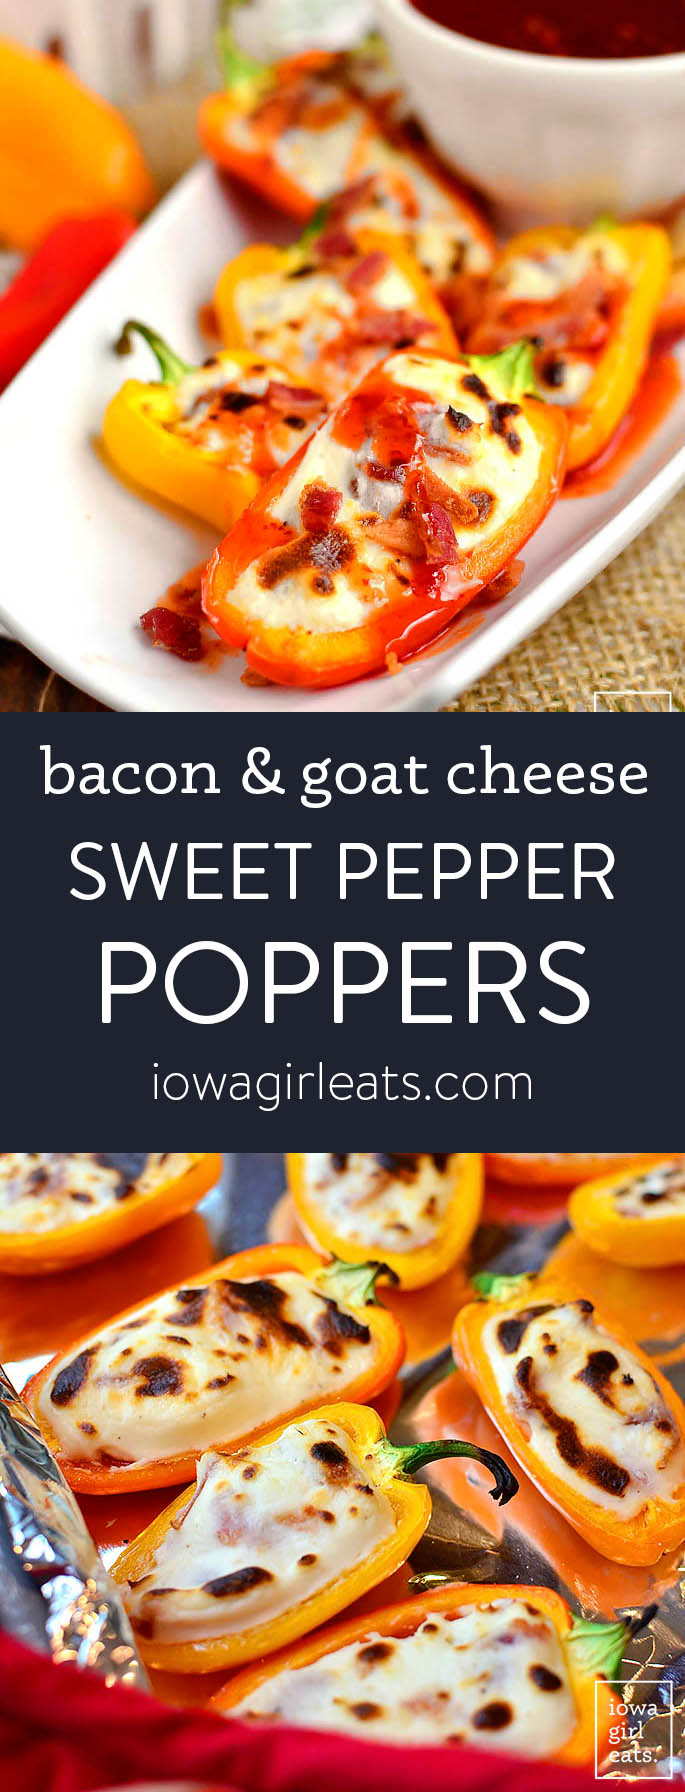 Photo collage of sweet pepper poppers